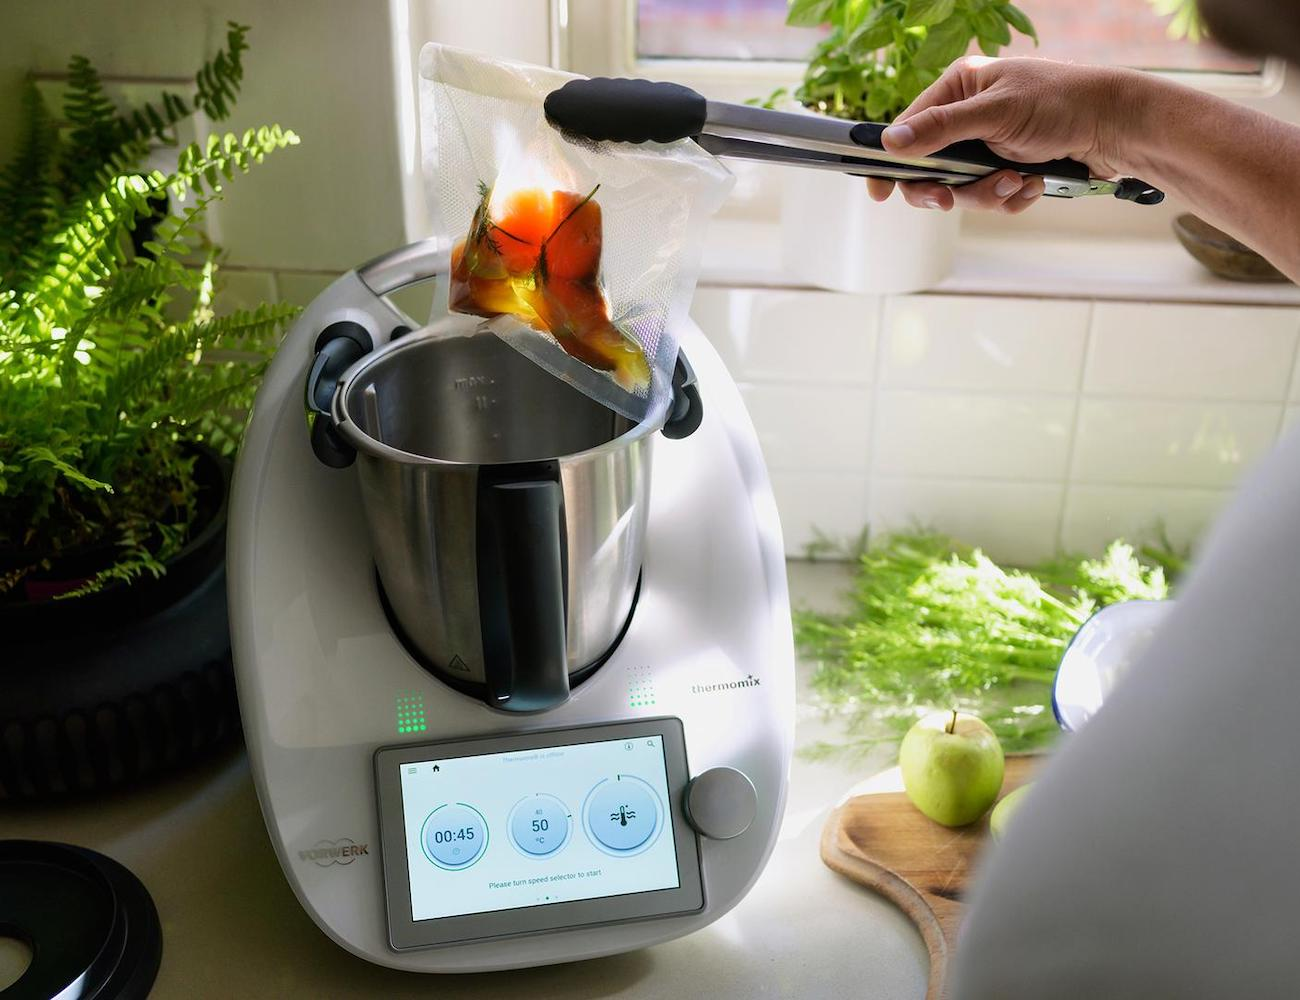 Thermomix TM6 Smart Food Processor Oven has over 20 different cooking functions